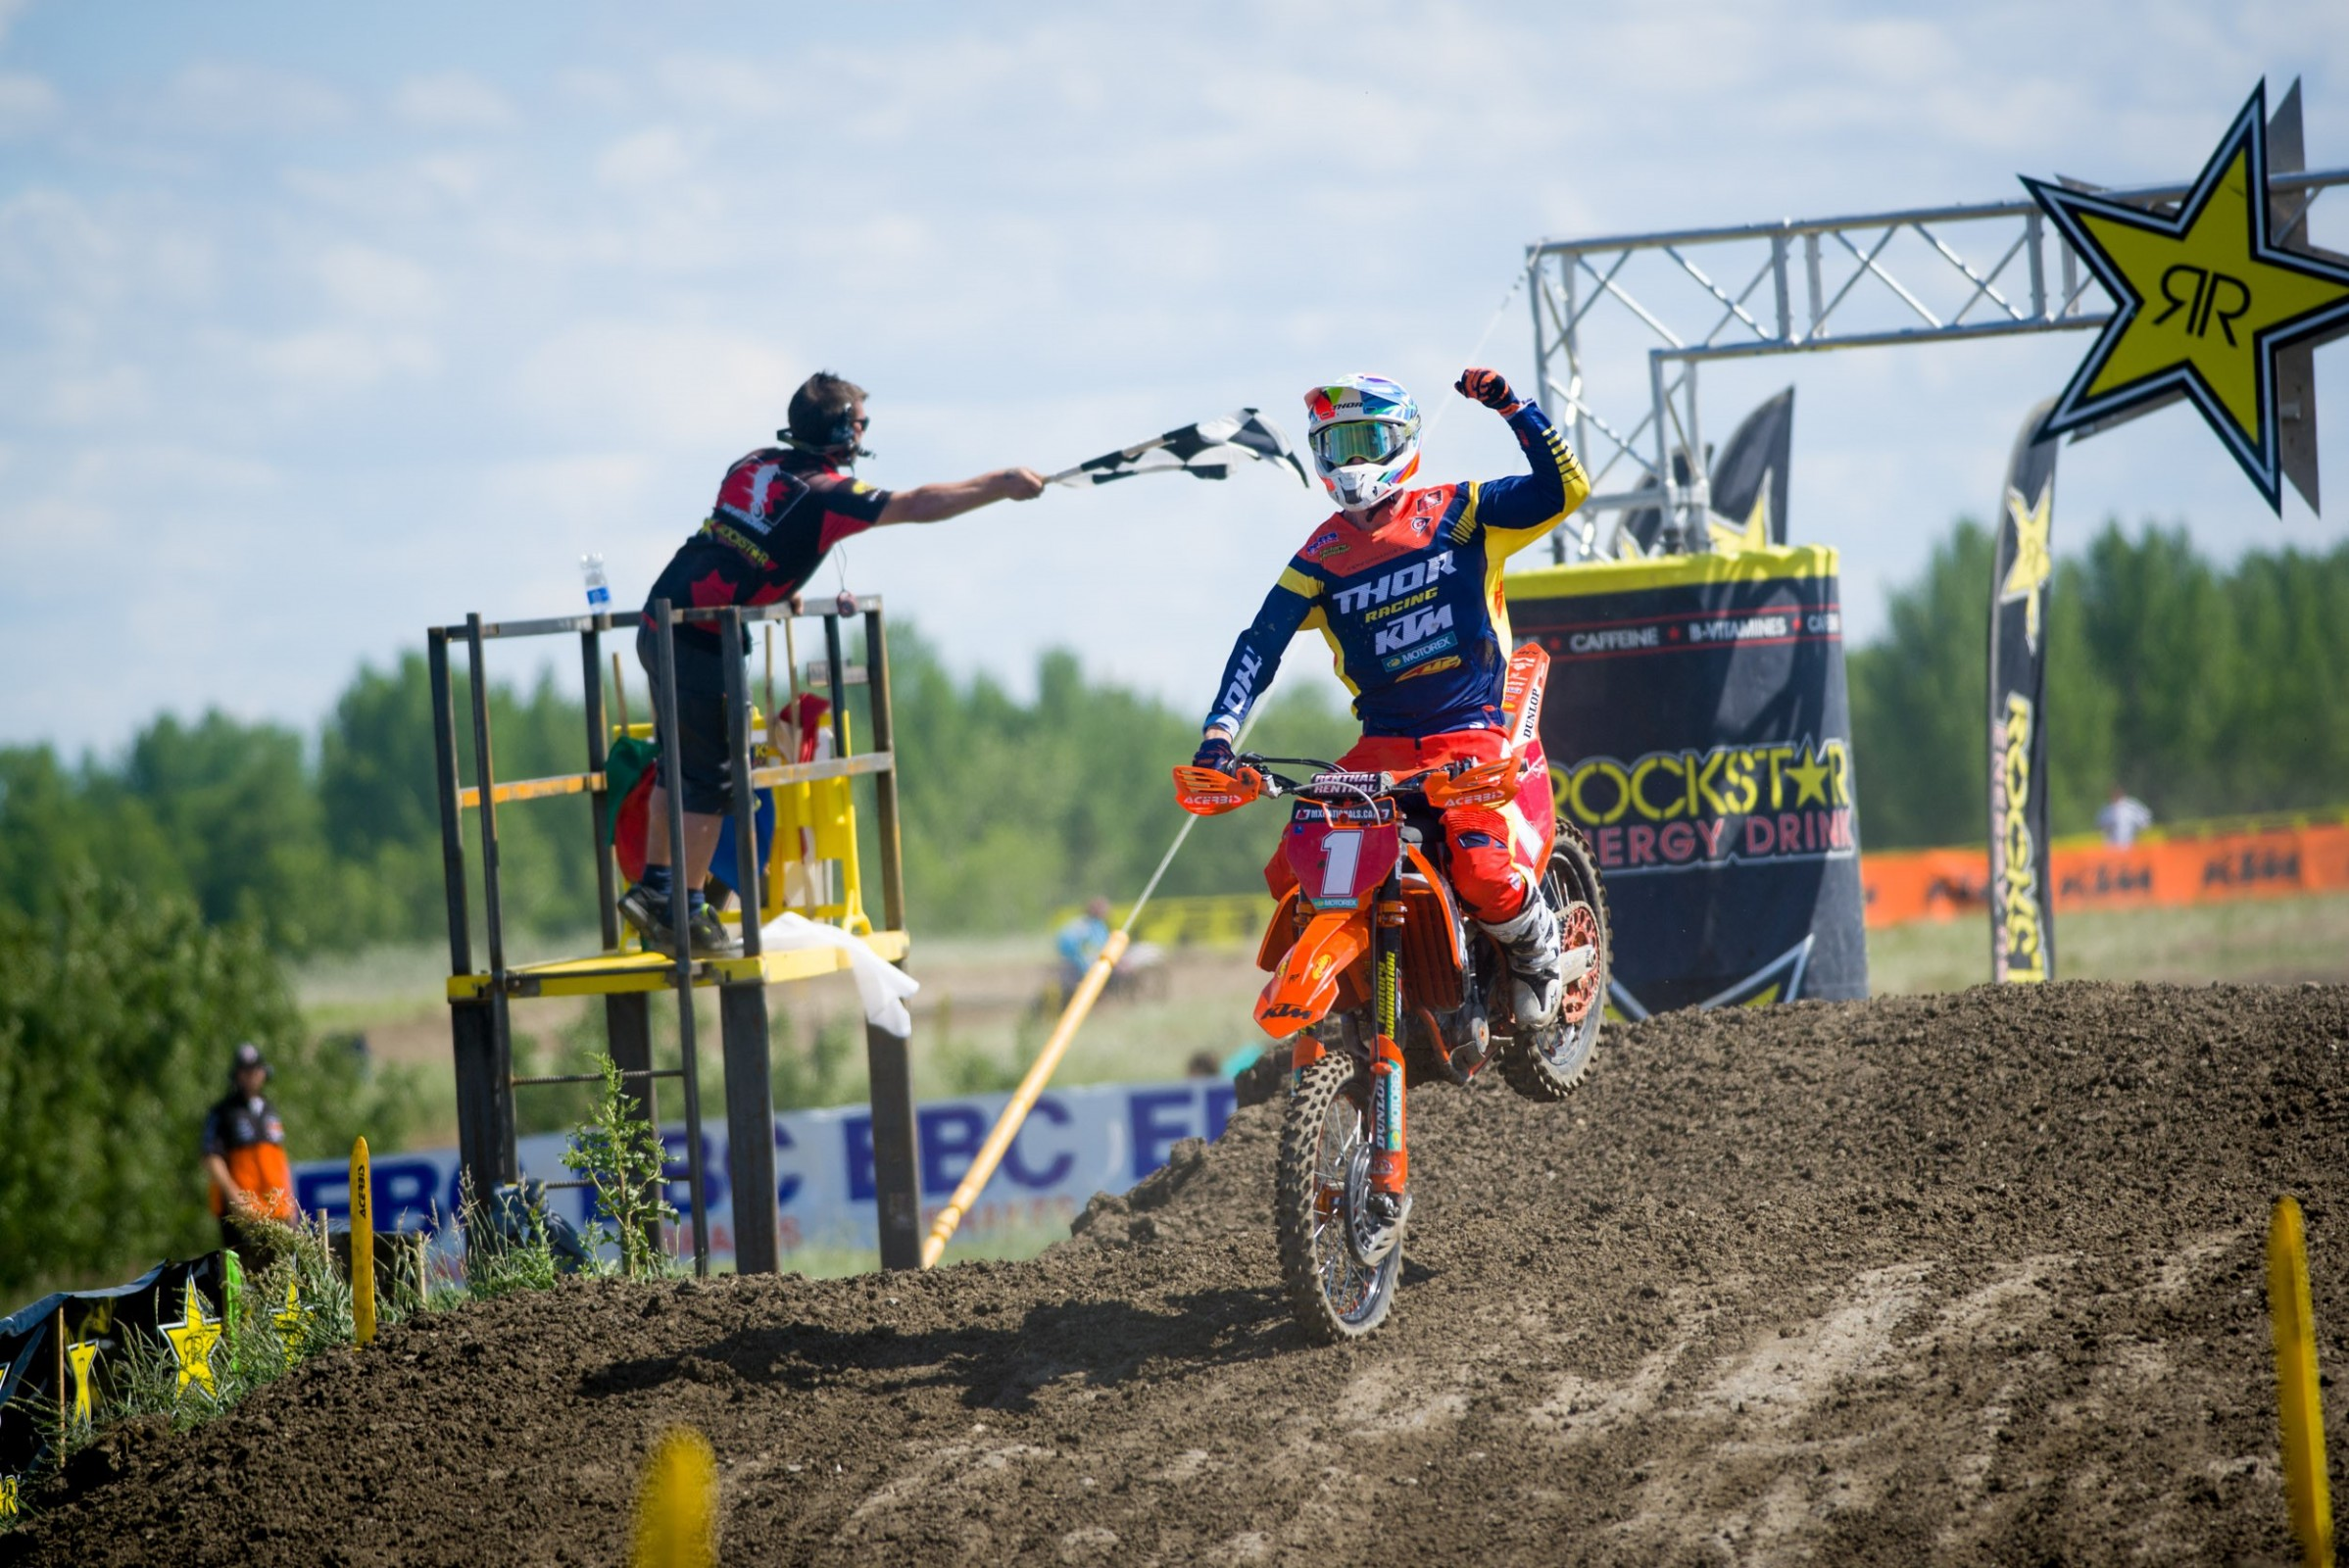 KTM Canada Thor Racing's Cole Thompson was a perfect 1-1 at the Moto Valley Raceway in Regina.